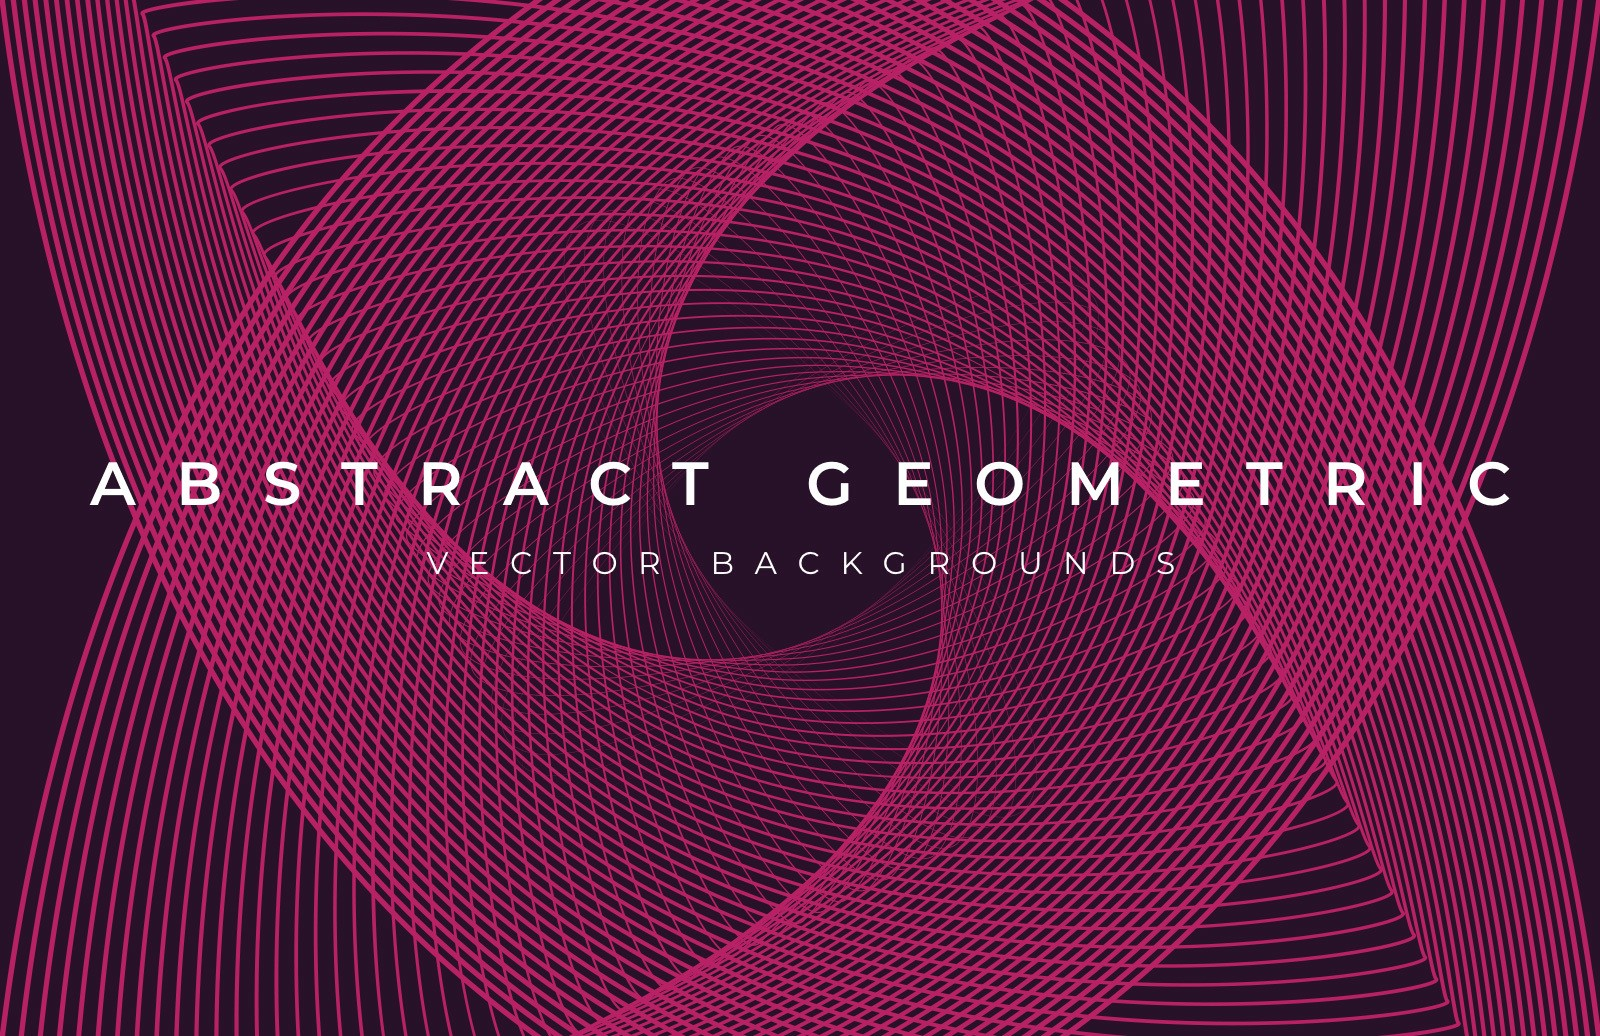 Abstract Geometric Vector Backgrounds Preview 1